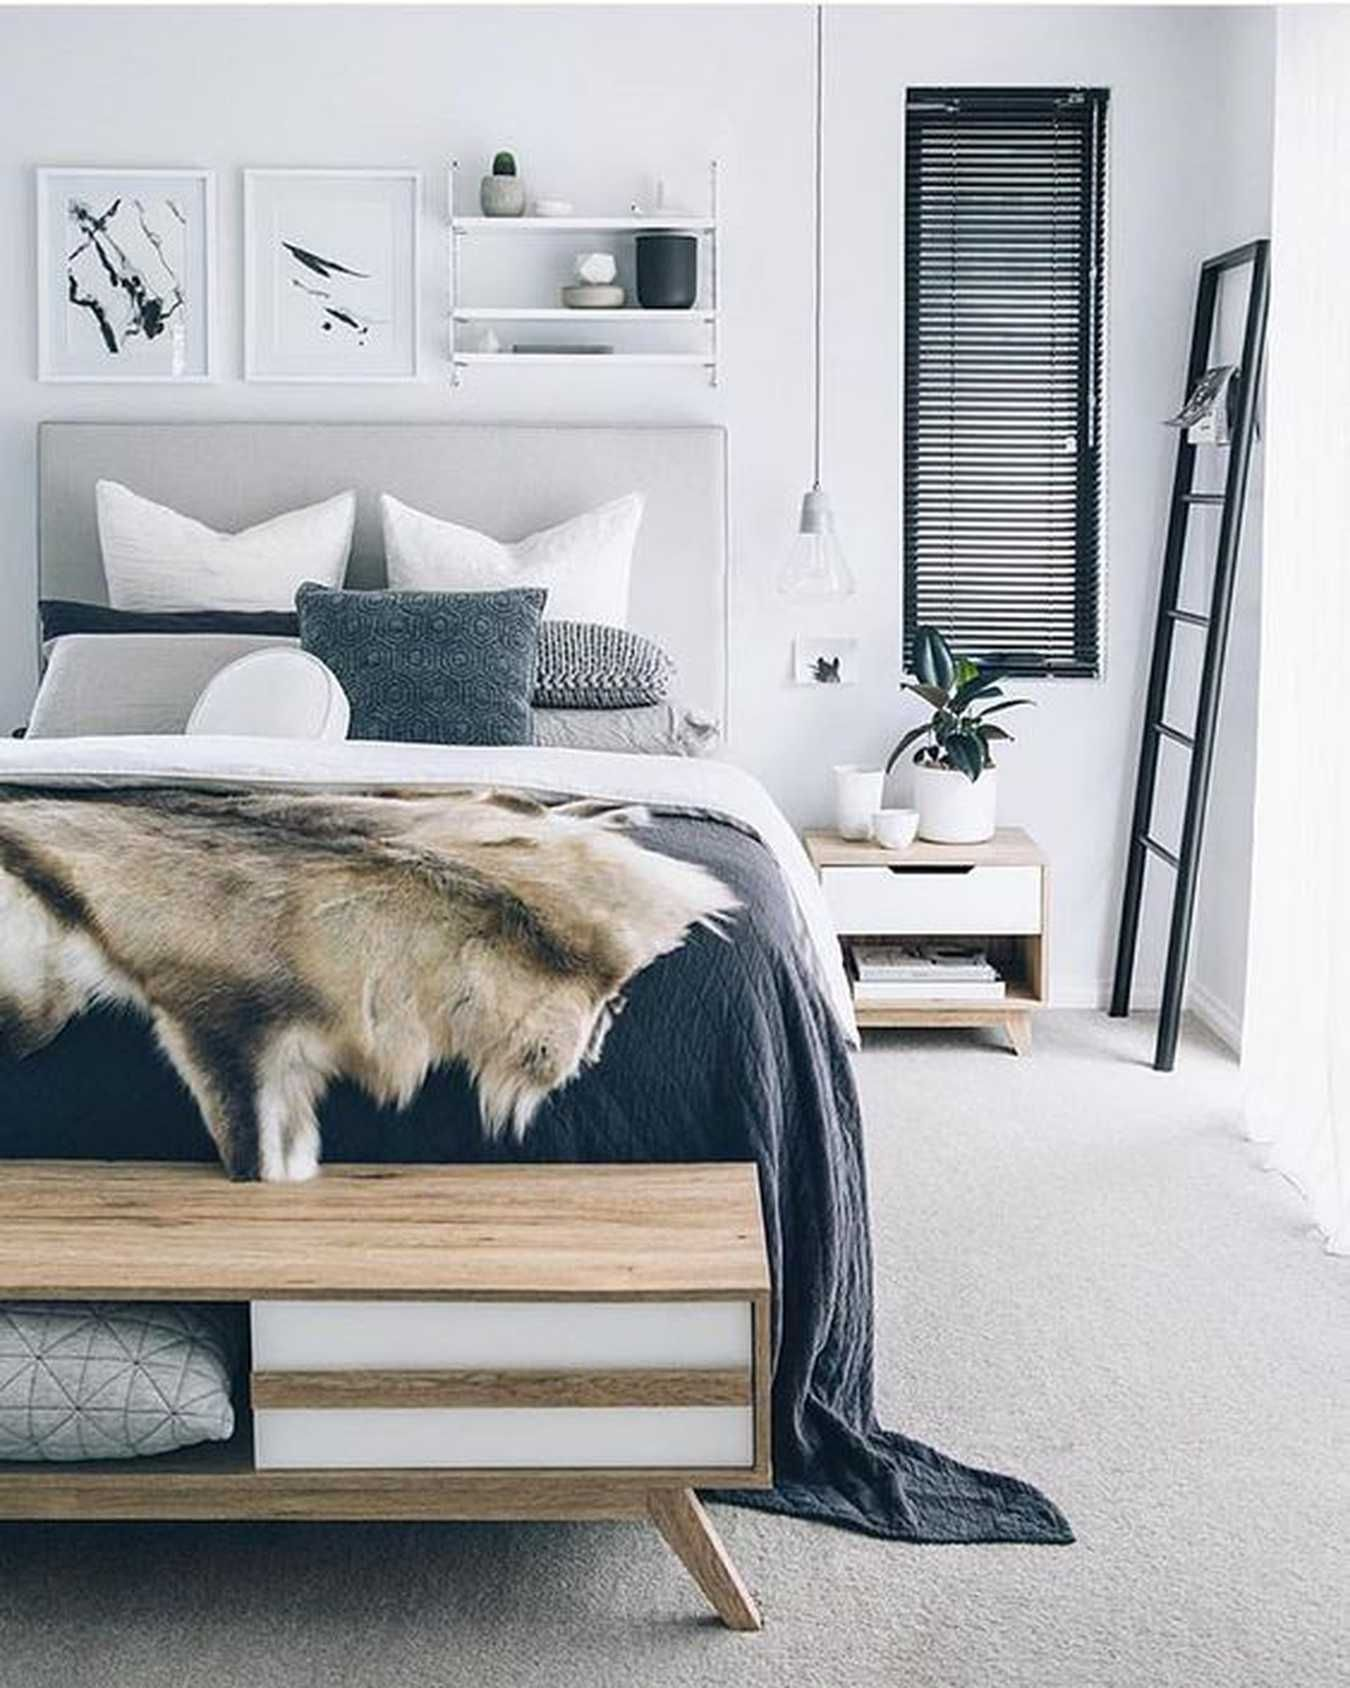 interior design style quiz what s your decorating style in 2018 rh pinterest com Bedroom Decorating Ideas On a Budget Bedroom Decorating Ideas On a Budget